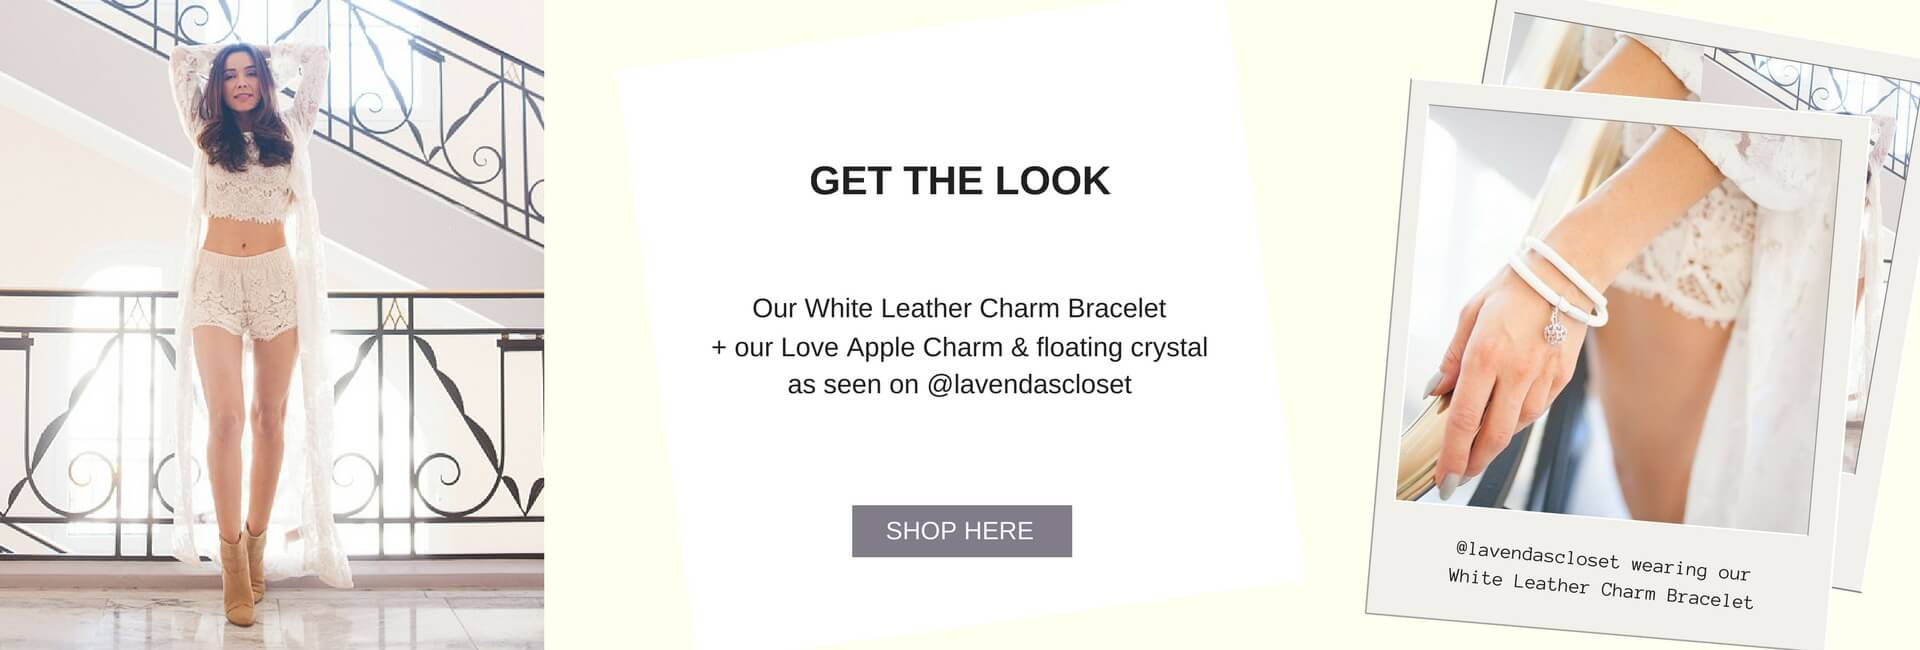 Jackie-Mack-Designs_Lavenda_White-Leather-Charm-Bracelet